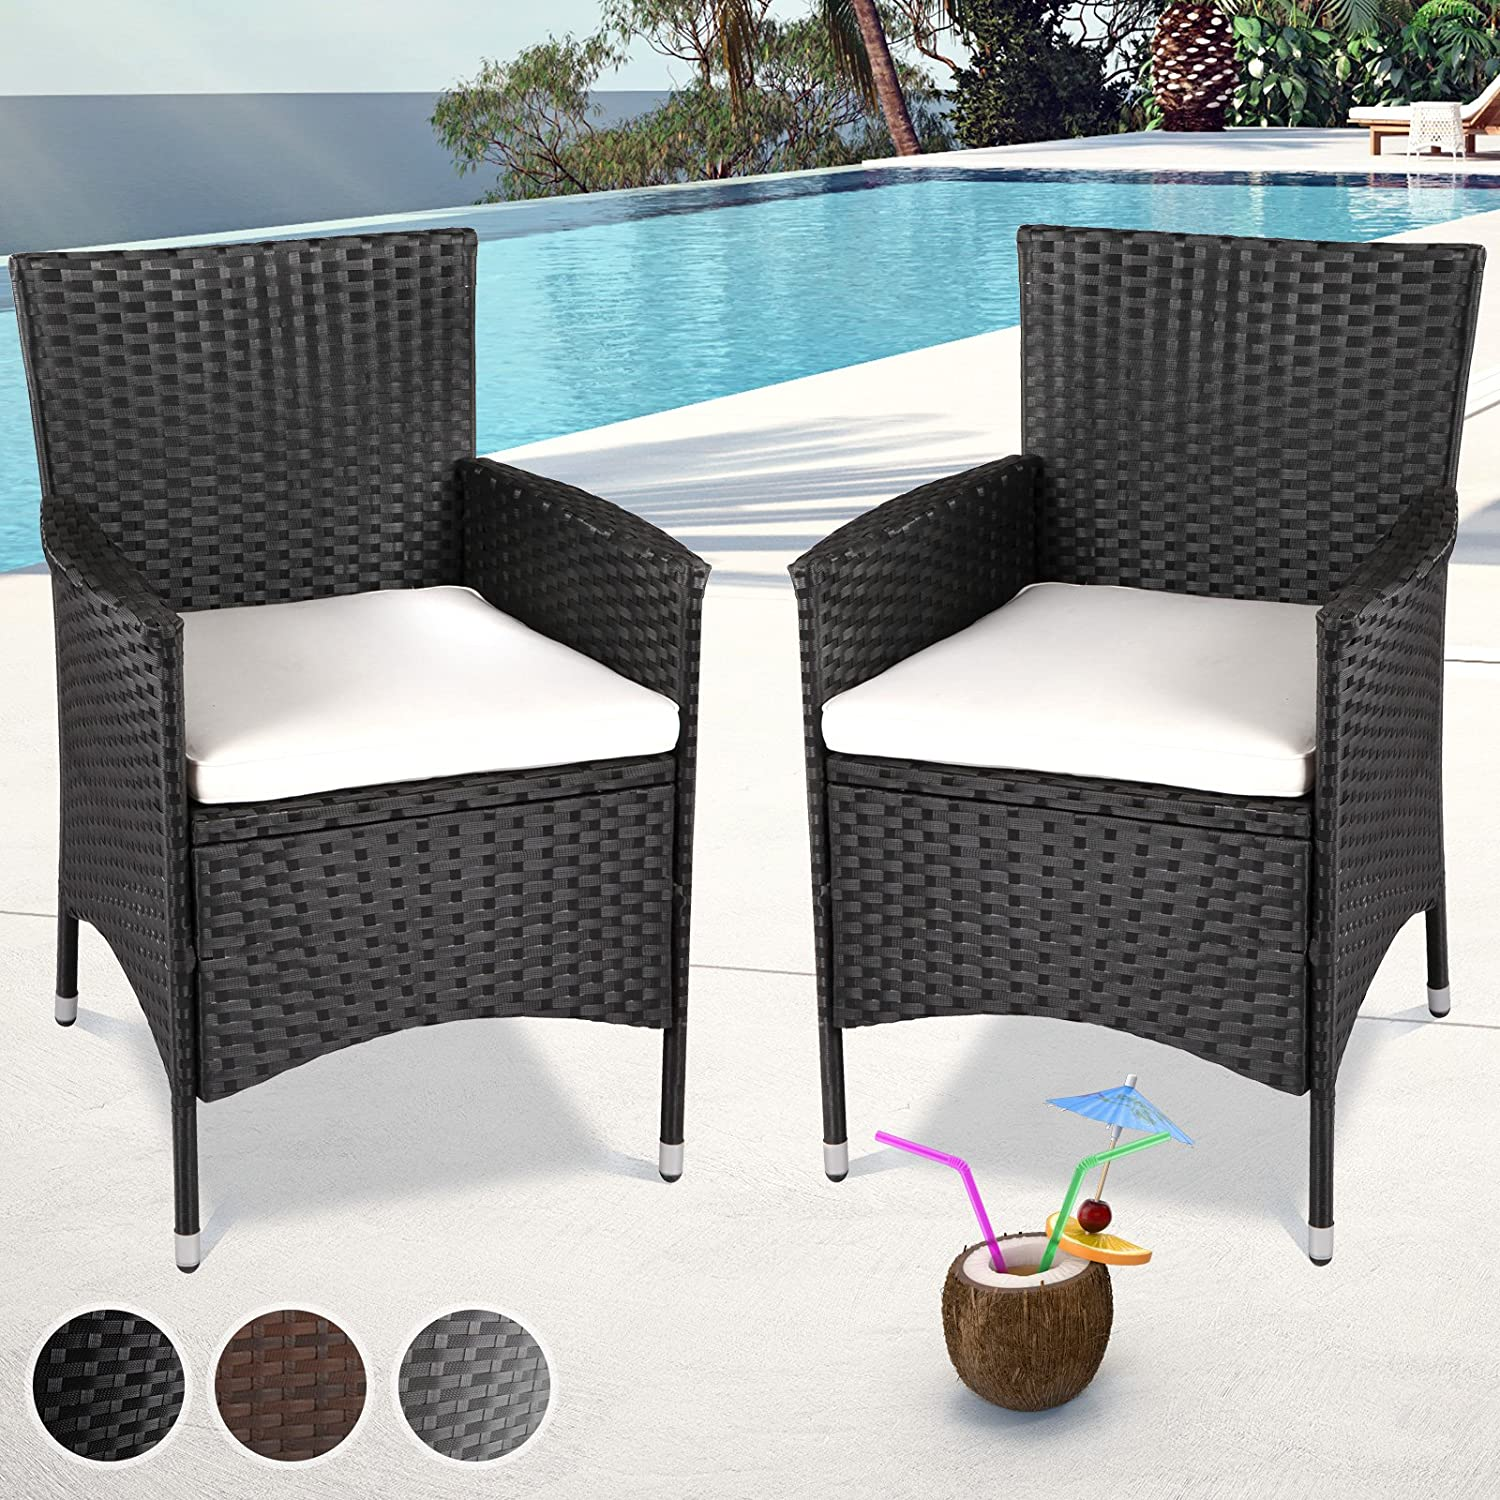 Miadomodo Set of Polyrattan Chairs with Seat Cushions (Choice of Colour and Set) Garden Armchairs Outdoor Patio Furniture (Set of 2 pcs, Brown)